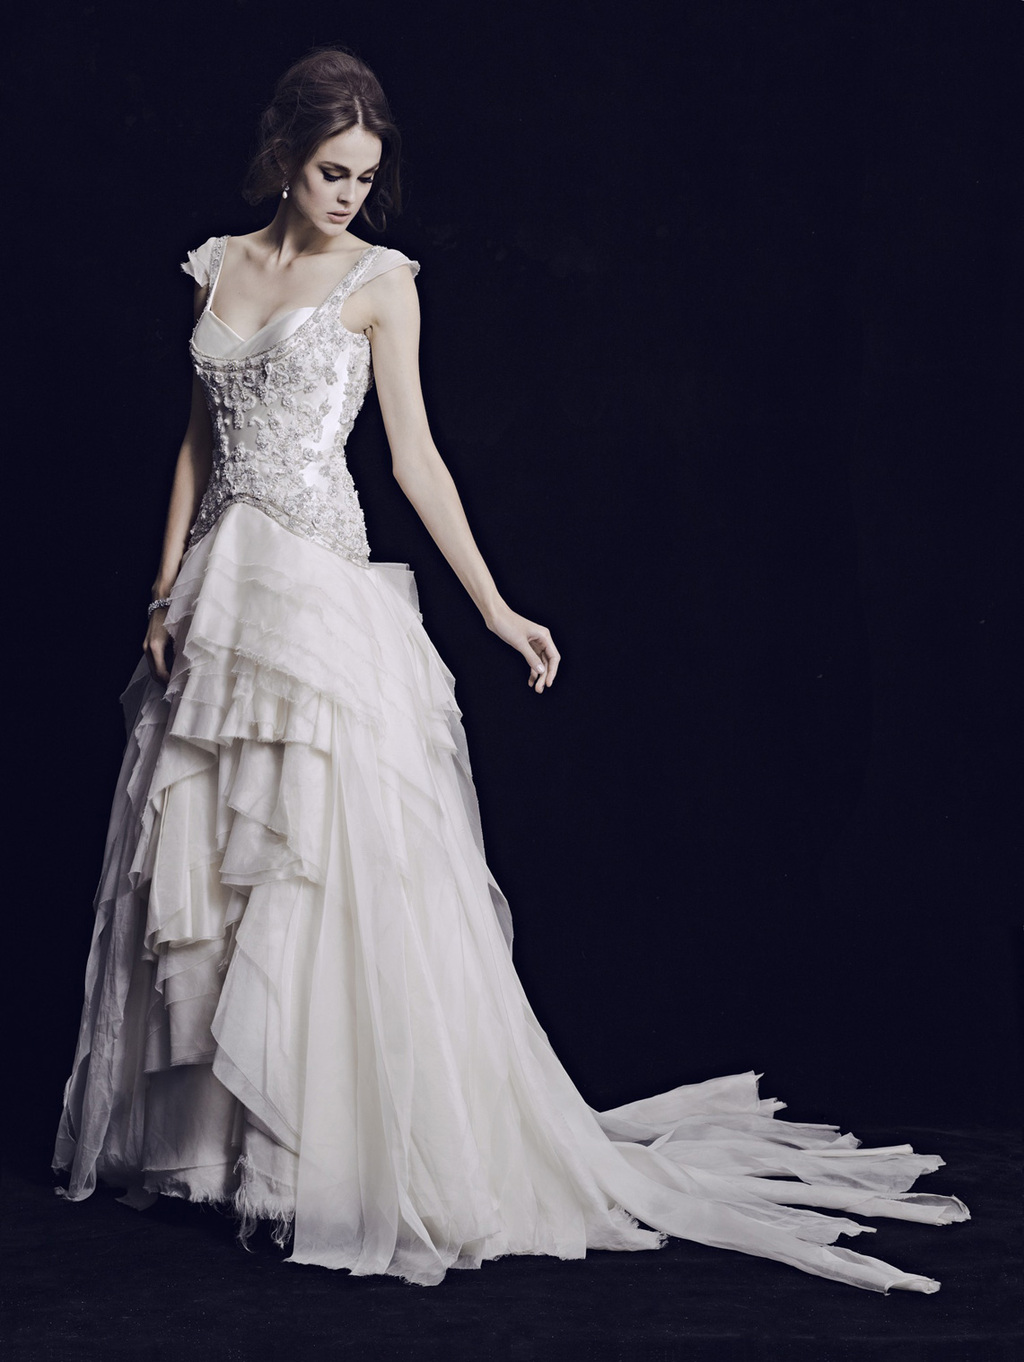 Mariana-hardwick-wedding-dress-2013-bridal-classic-9.full